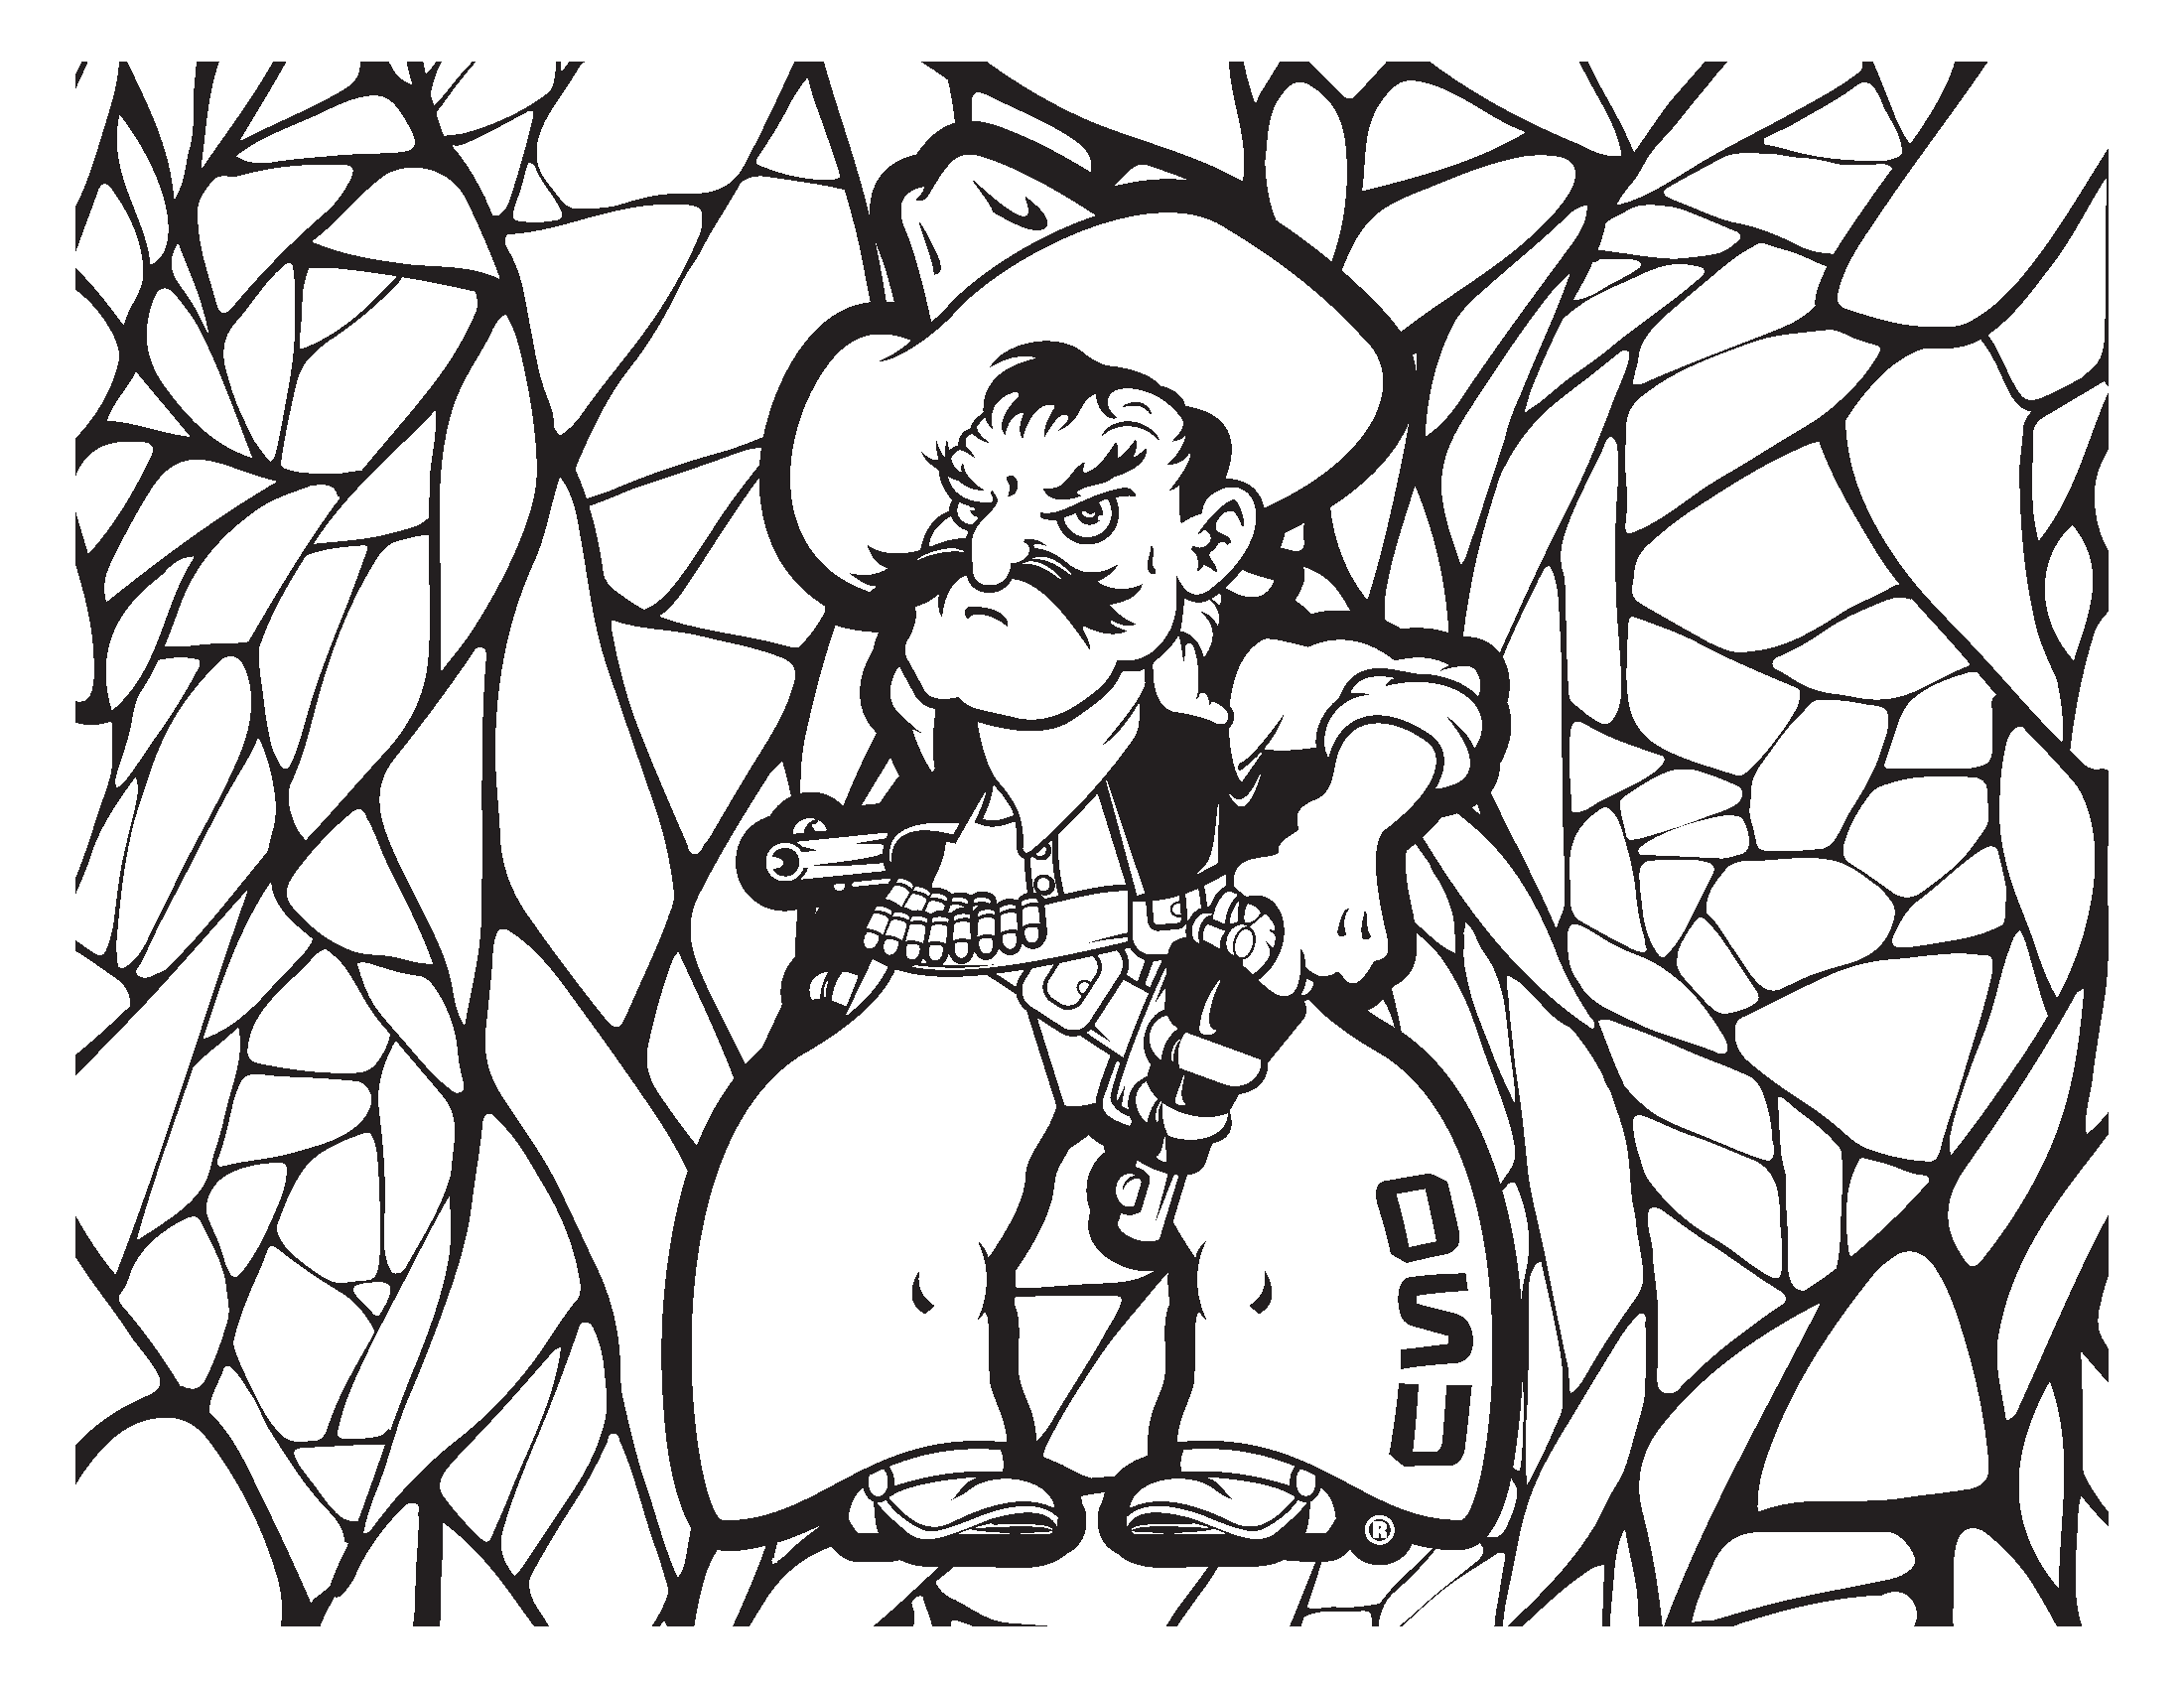 Pete Mosaic Coloring Page